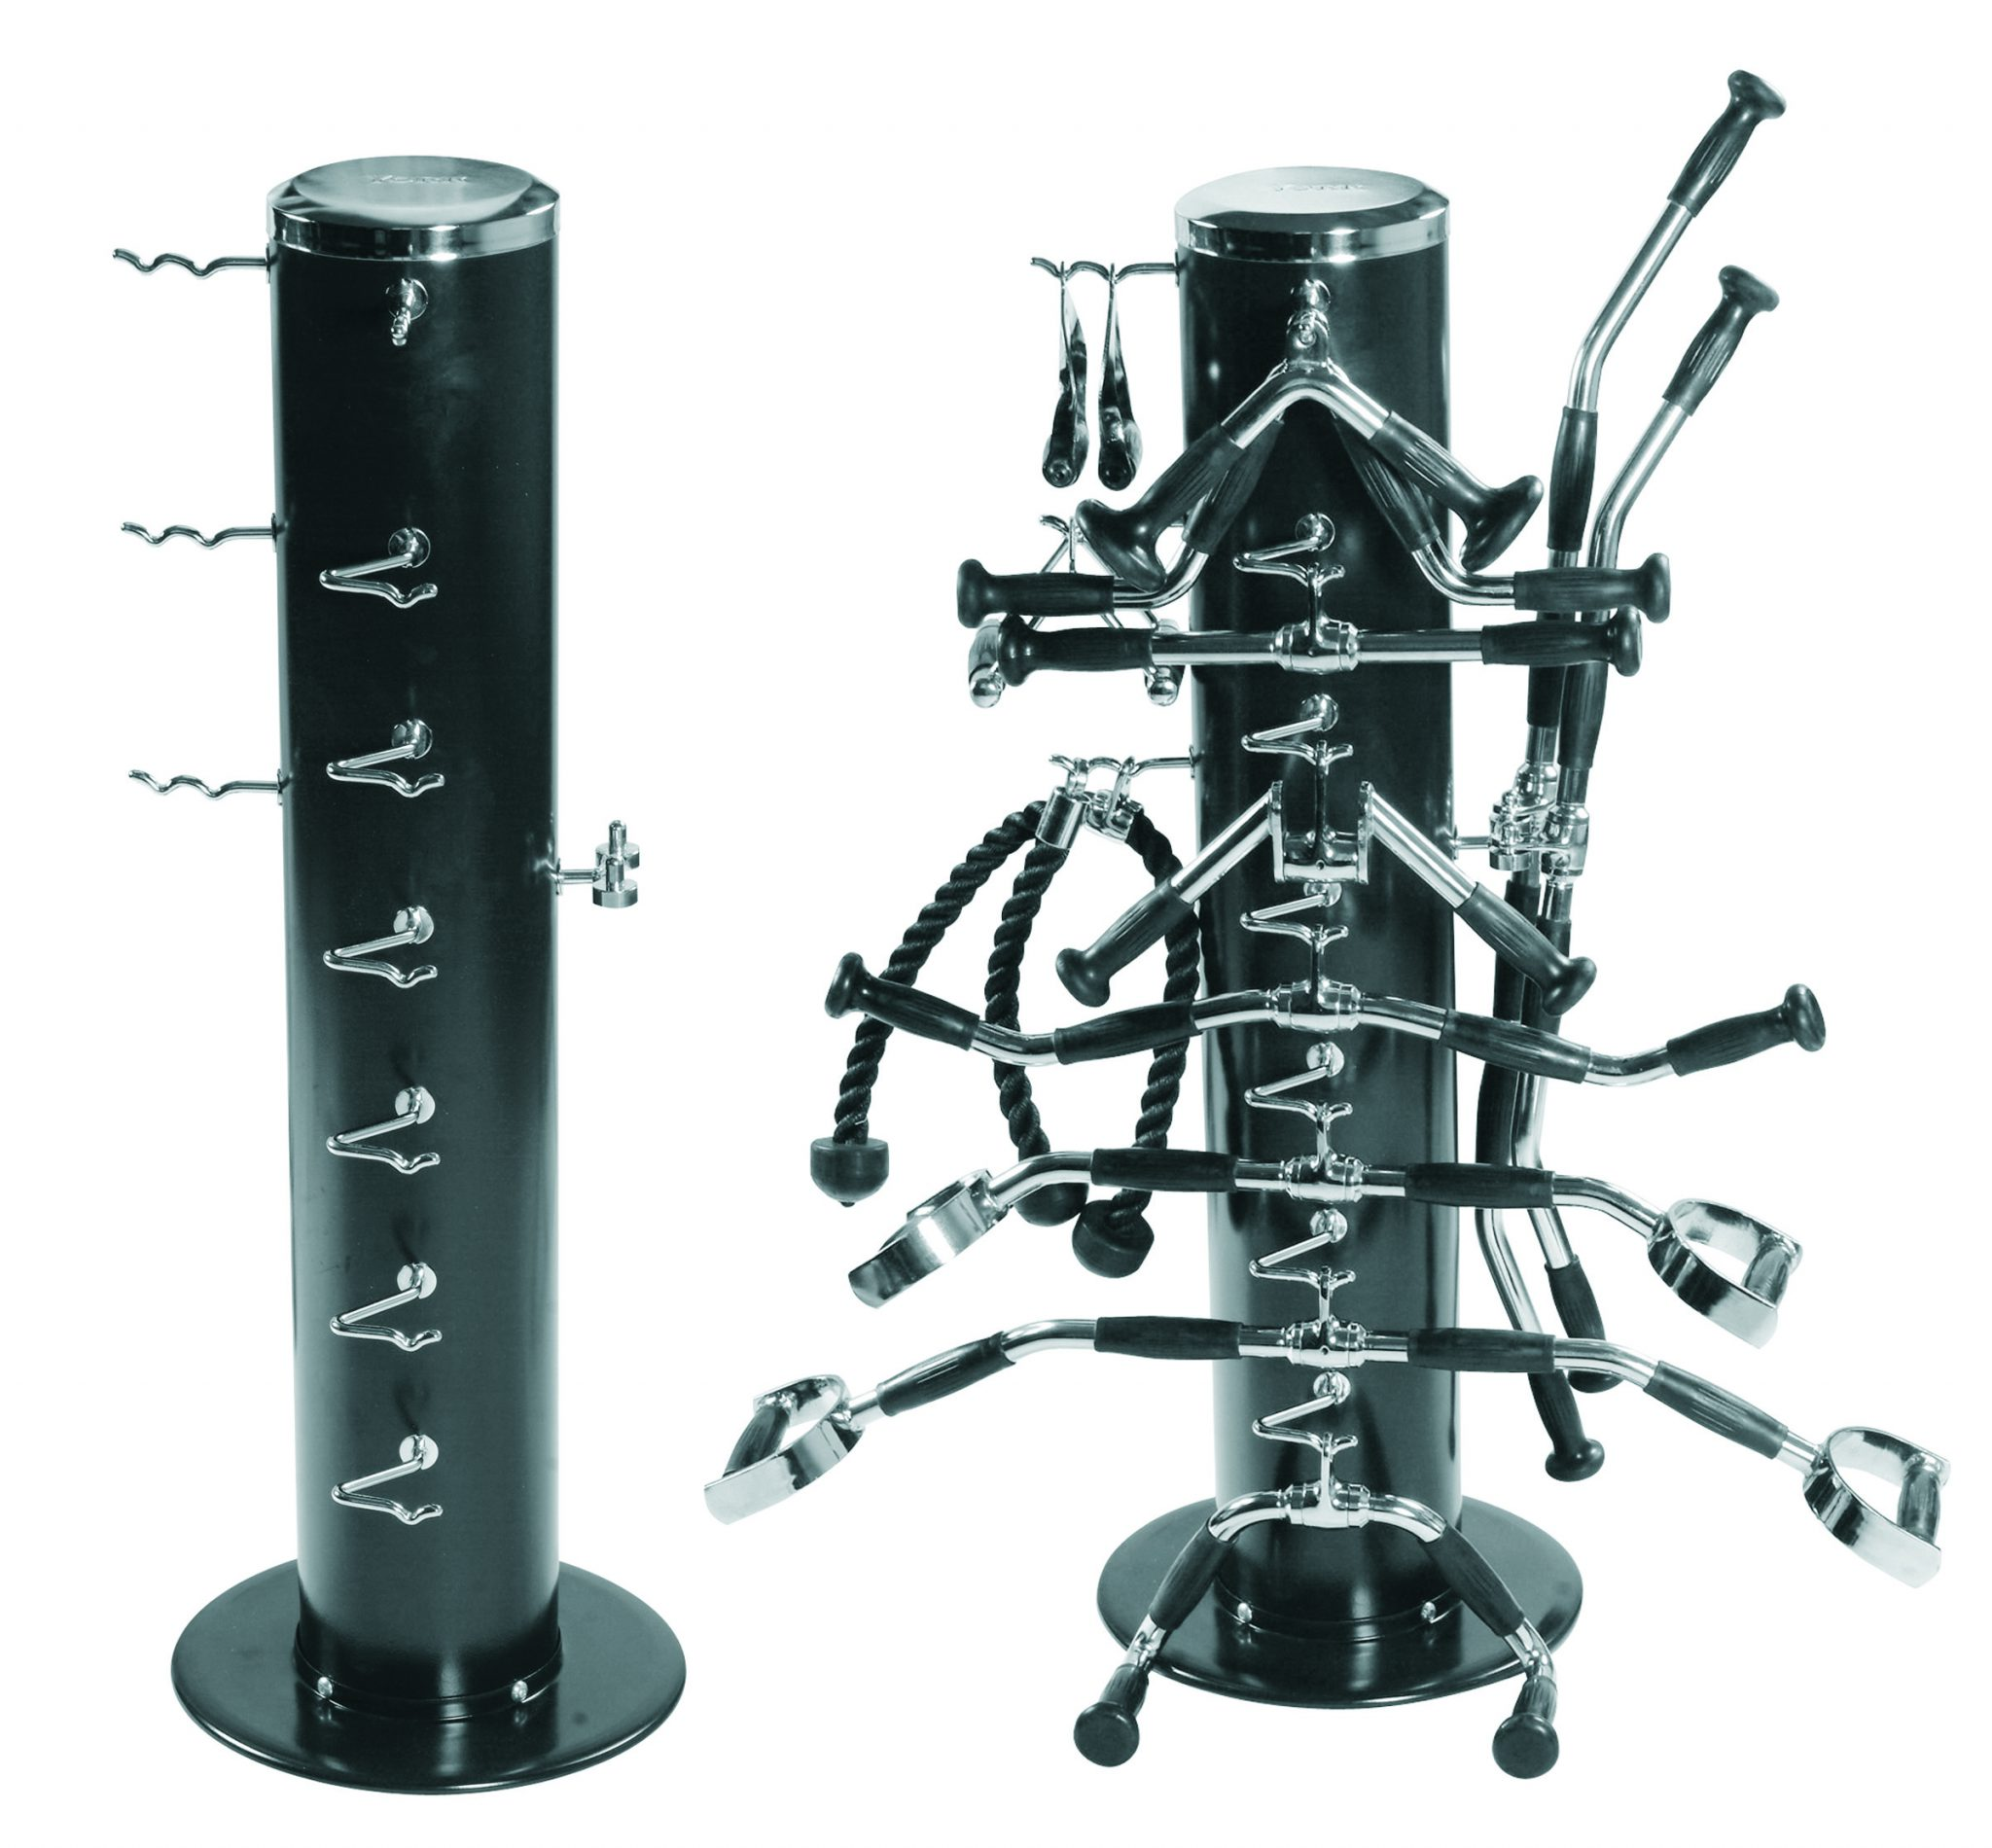 this from some single have olympic conveniently your easily up titan t vertical storage ready holder around barbell with and go space always for store rack mount clear power to itm